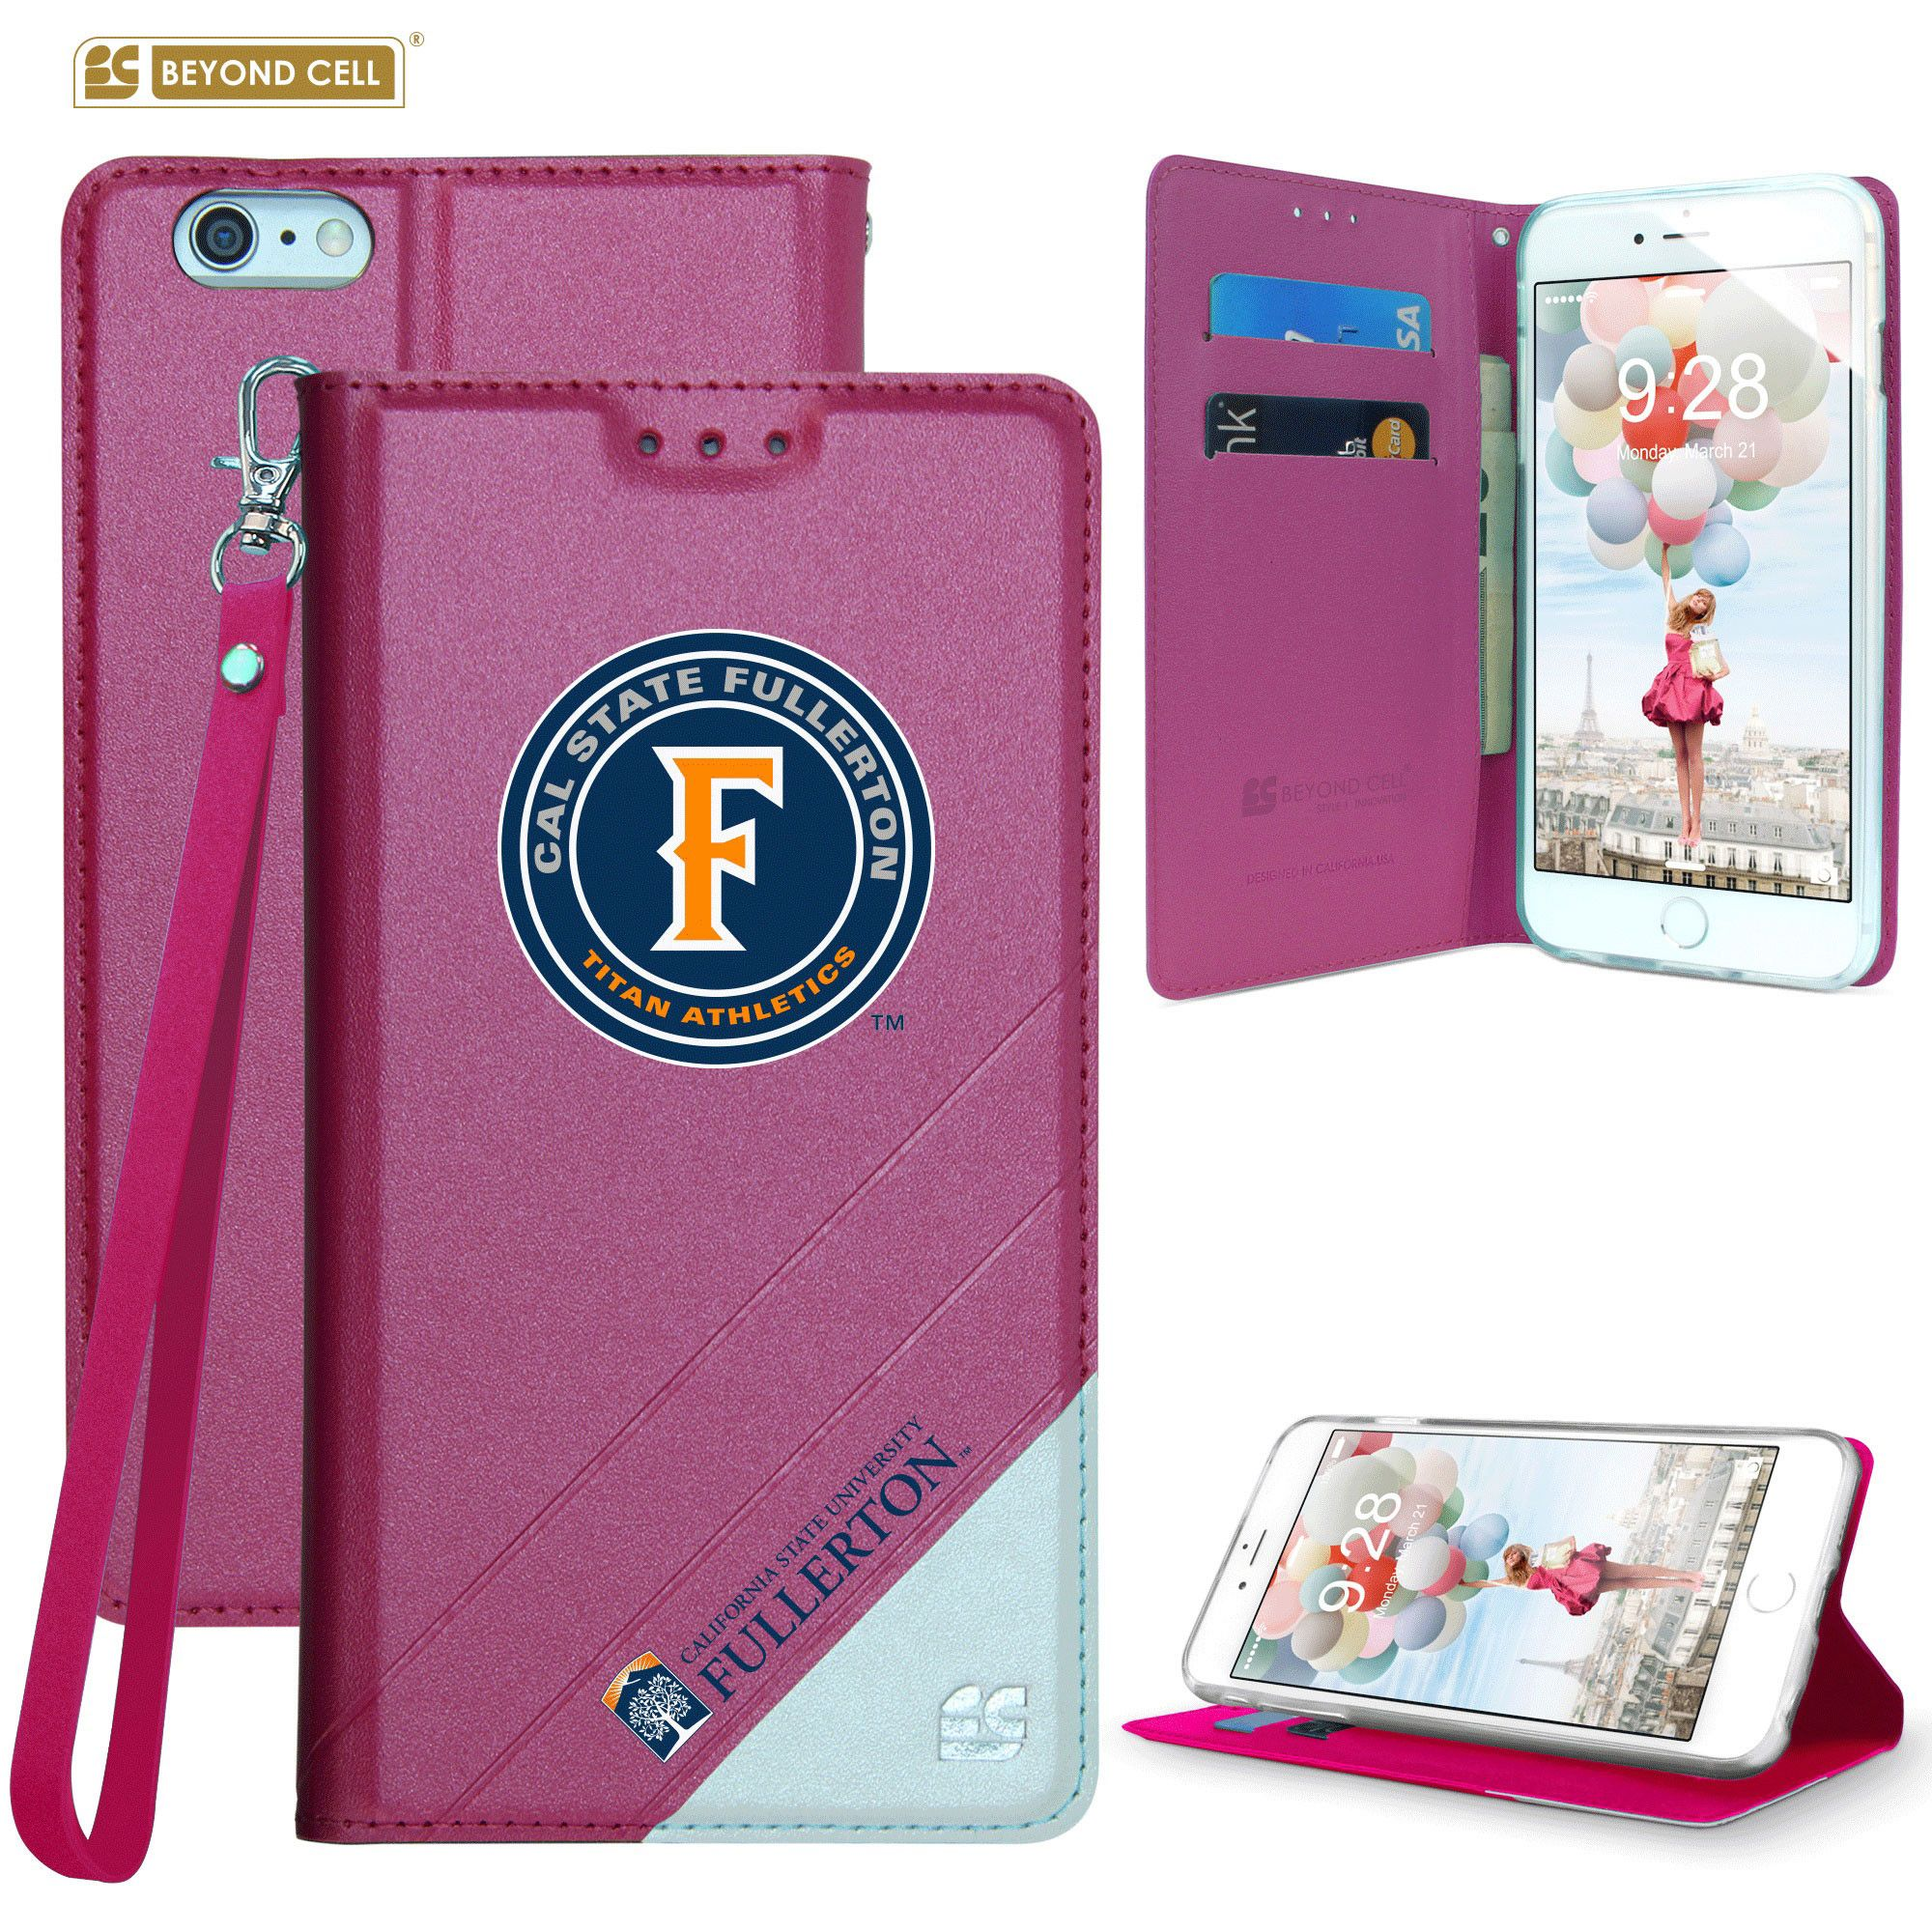 Apple iPhone 6/6s - Licensed Cal State Fullerton Folding Wallet case with card slots and wristlet, Hot Pink